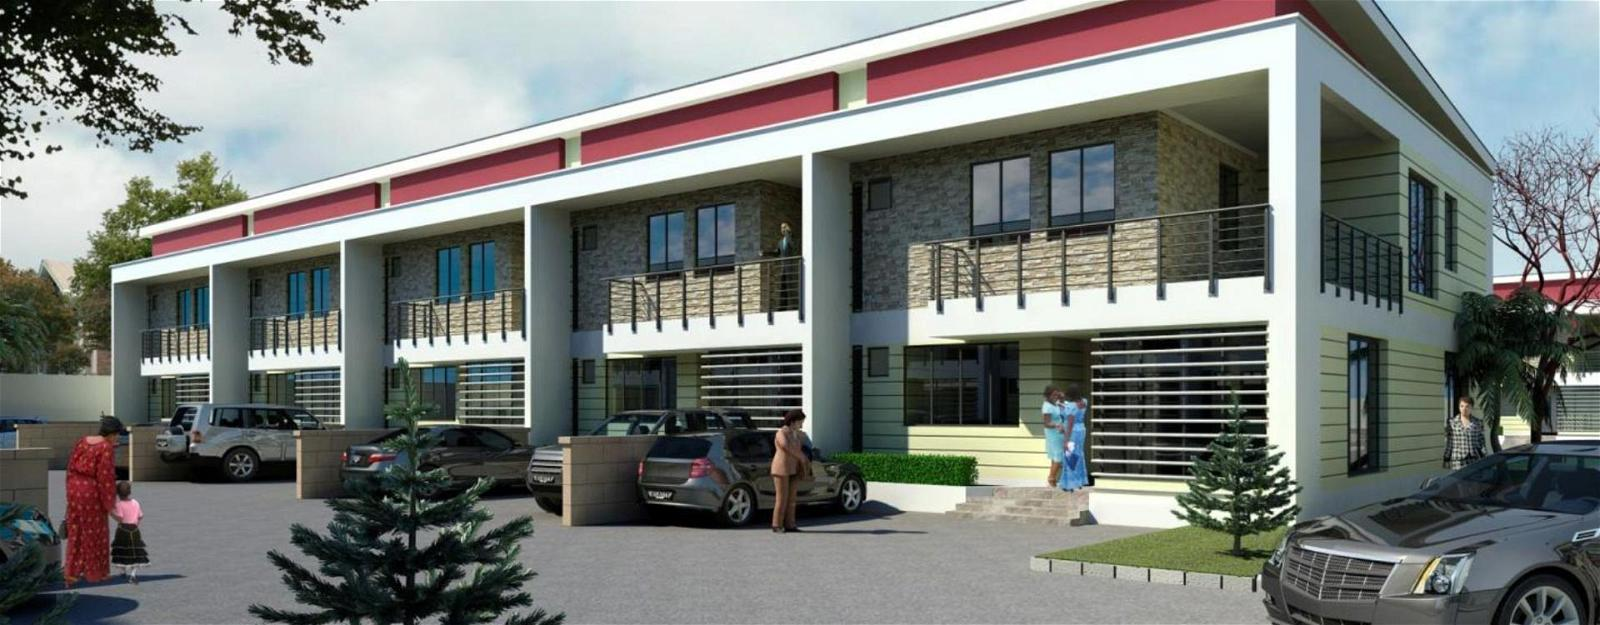 Developer partners foreign firm to build cheaper modular - Are modular homes cheaper ...